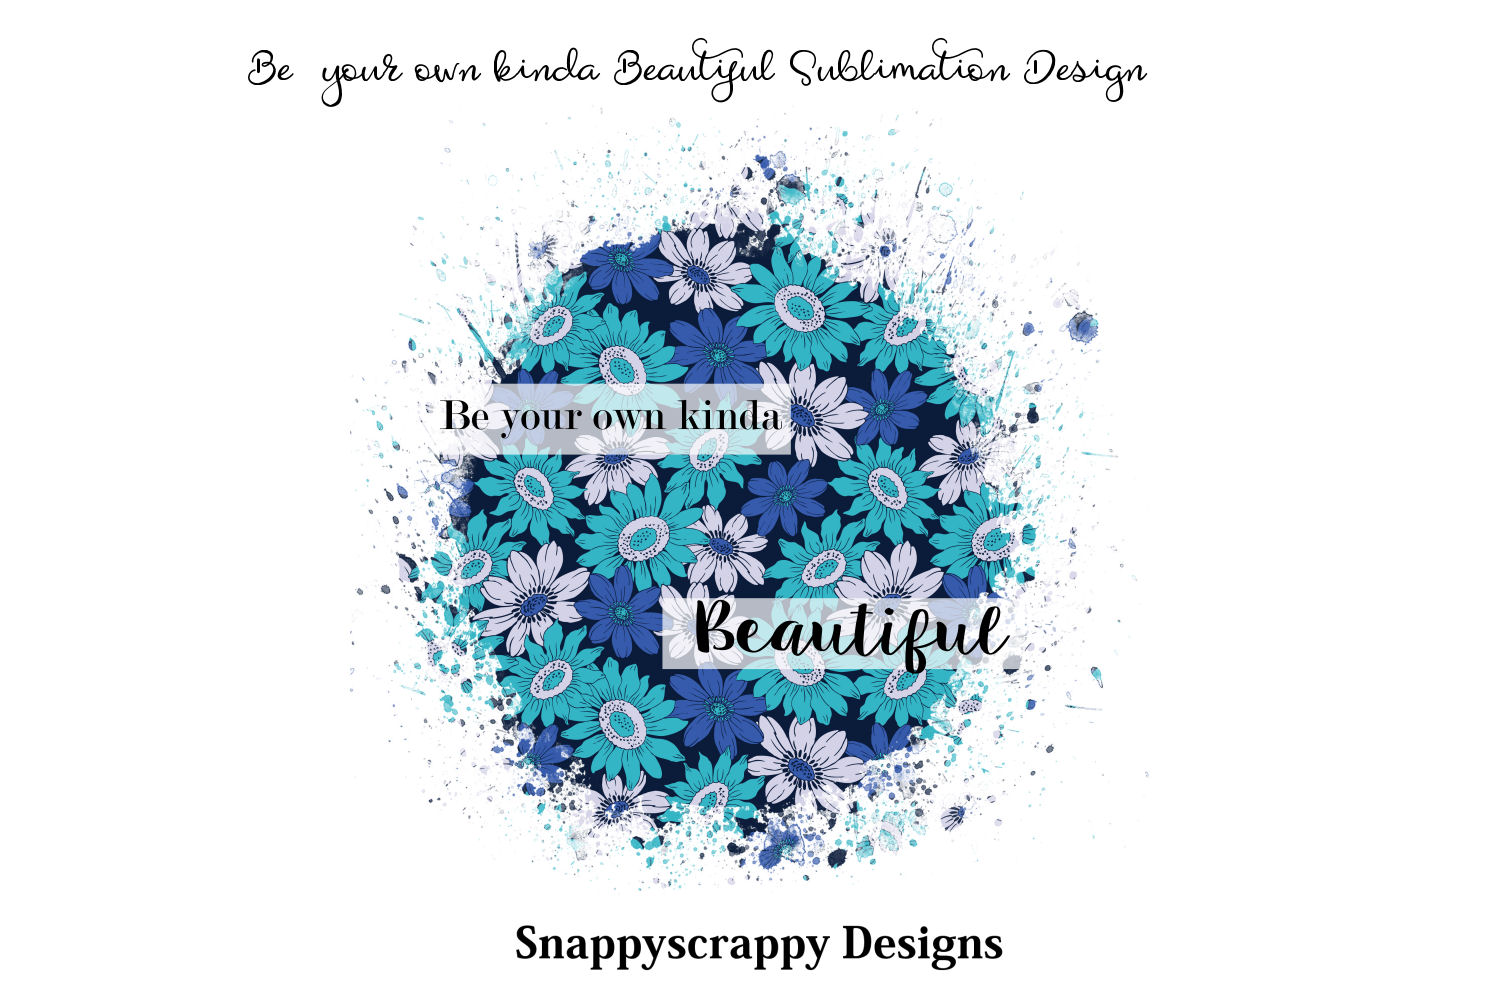 Be Your Own Kinda Beautiful Sublimation Design example image 1